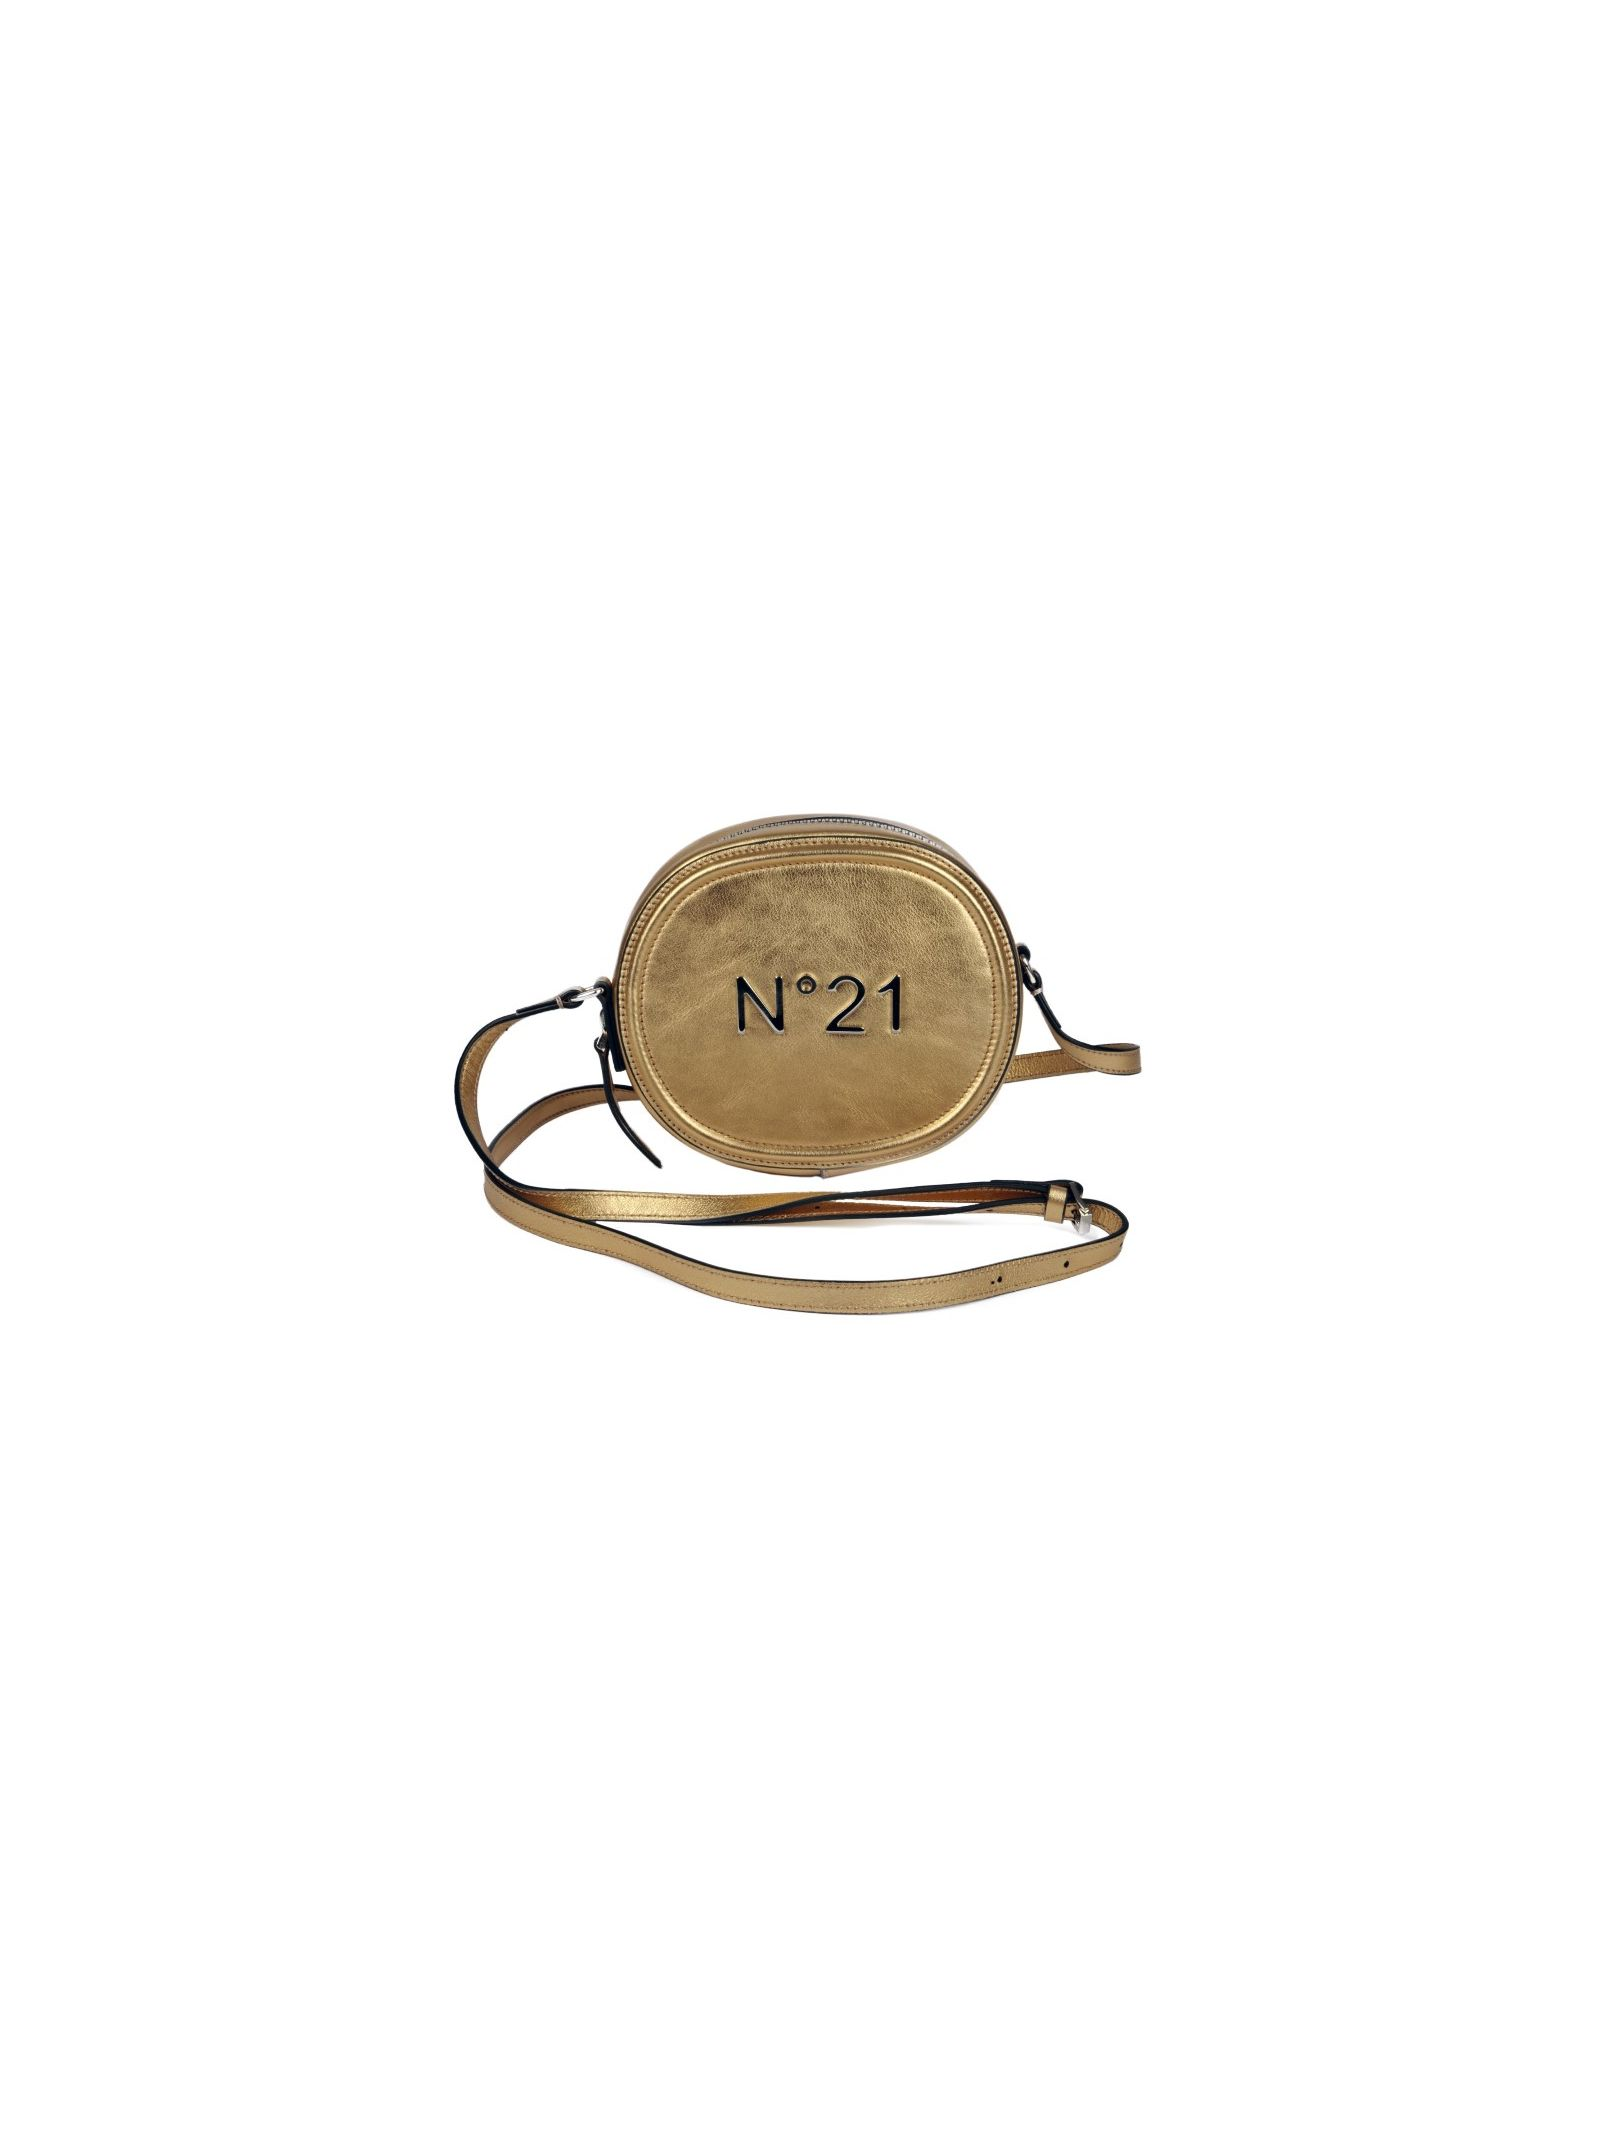 logo studded shoulder bag from n 21: logo studded shoulder bag with round body, front zip fastening, adjustable shoulder strap and silver-tone metal brand logo at front.